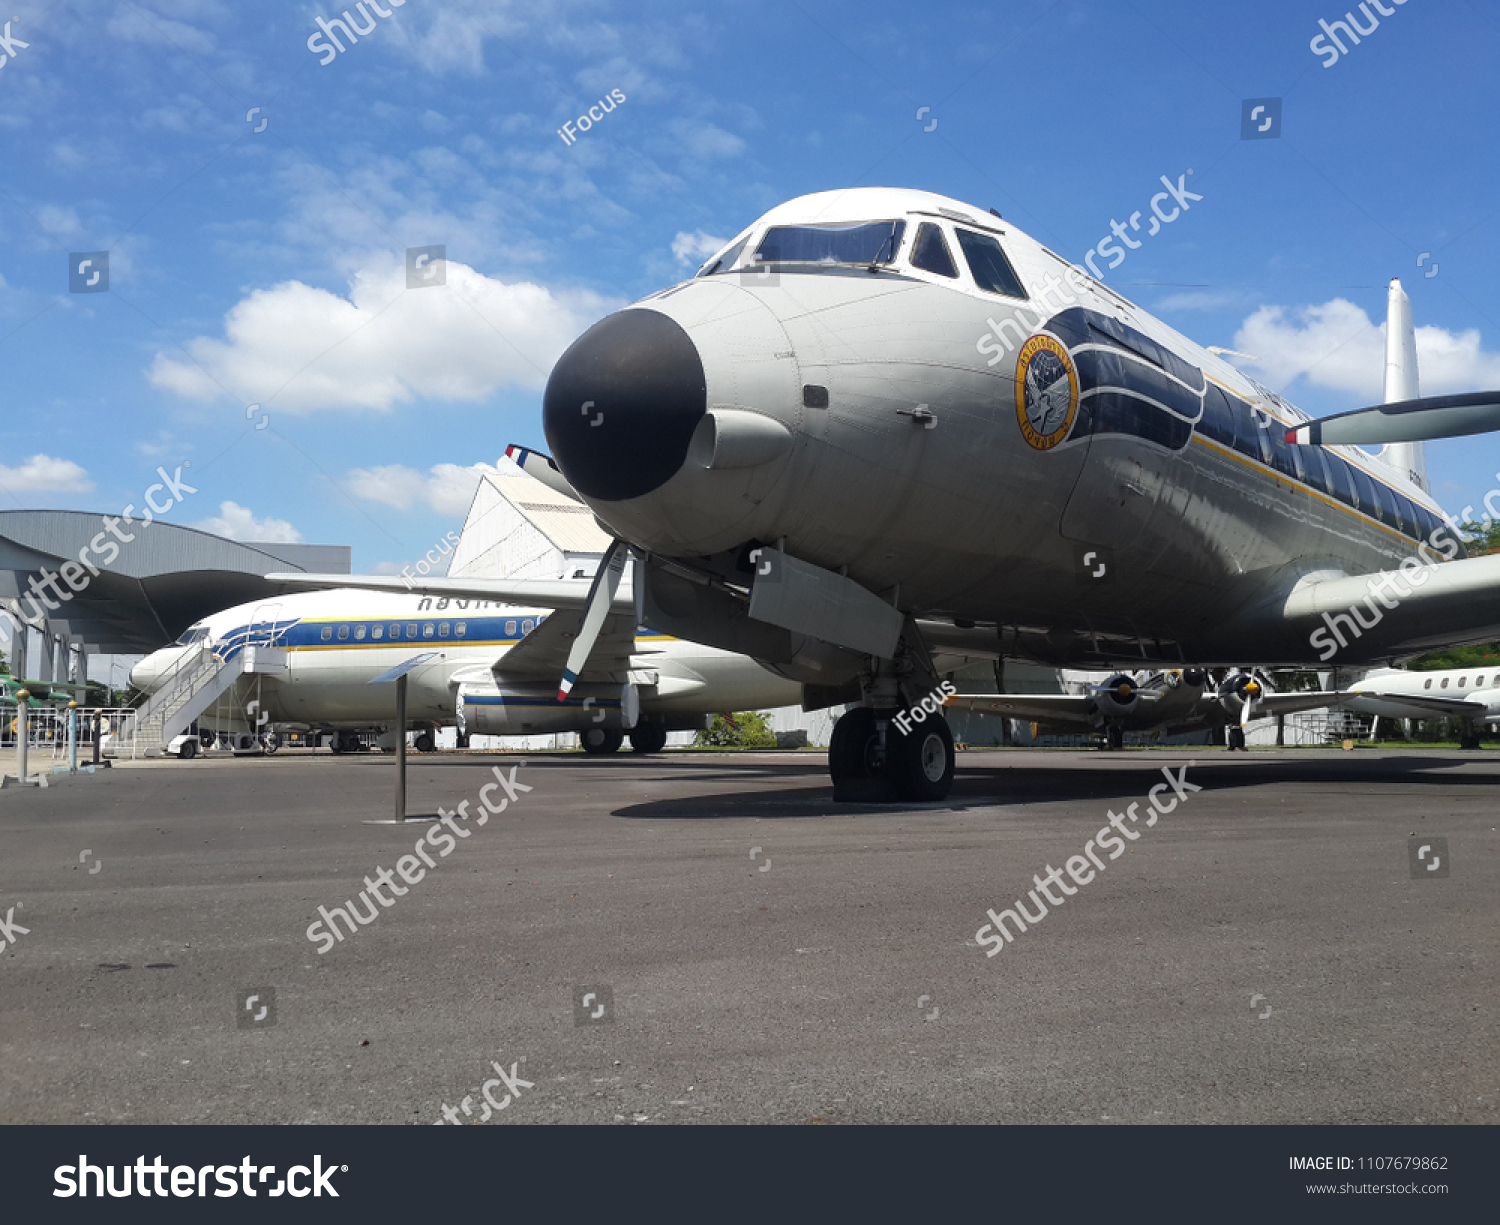 BANGKOK, THAILAND - JUNE 5, 2018: Royal Thai Air Force museum displays a Hawker Siddeley HS-748 and in the background a Boeing 737-200 on June 5, 2018 in Bangkok, Thailand.